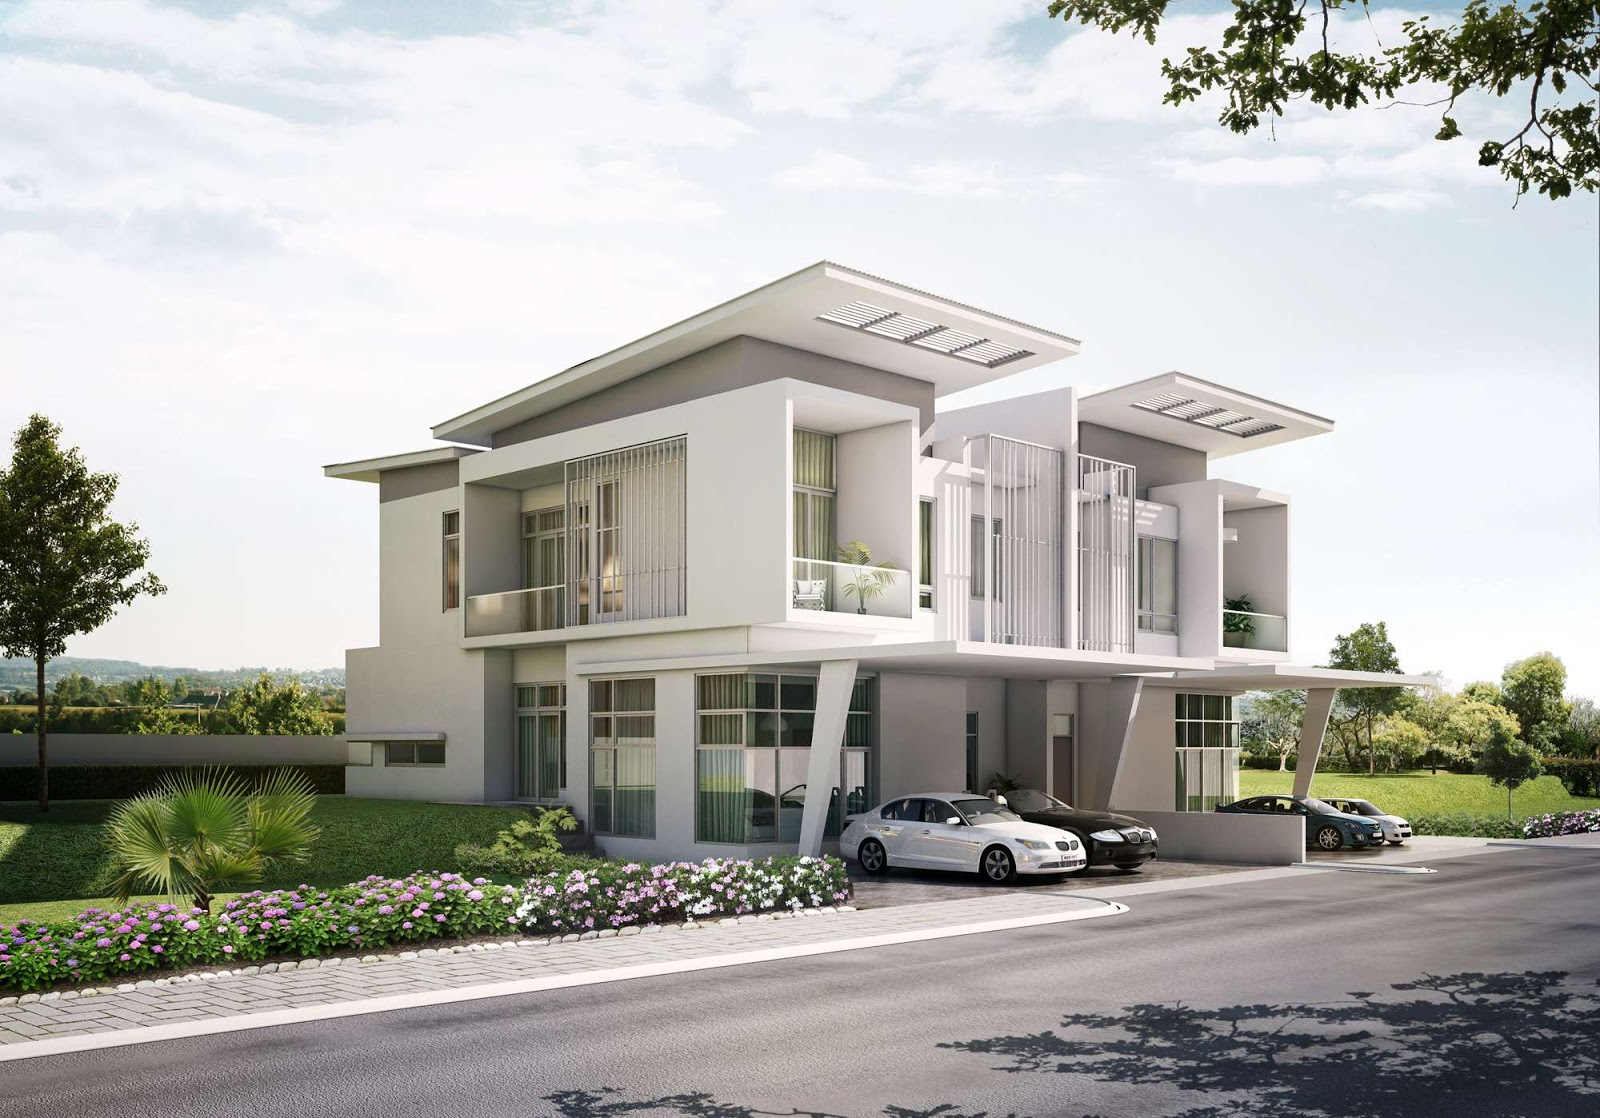 New home designs latest singapore modern homes exterior for Modernized exteriors